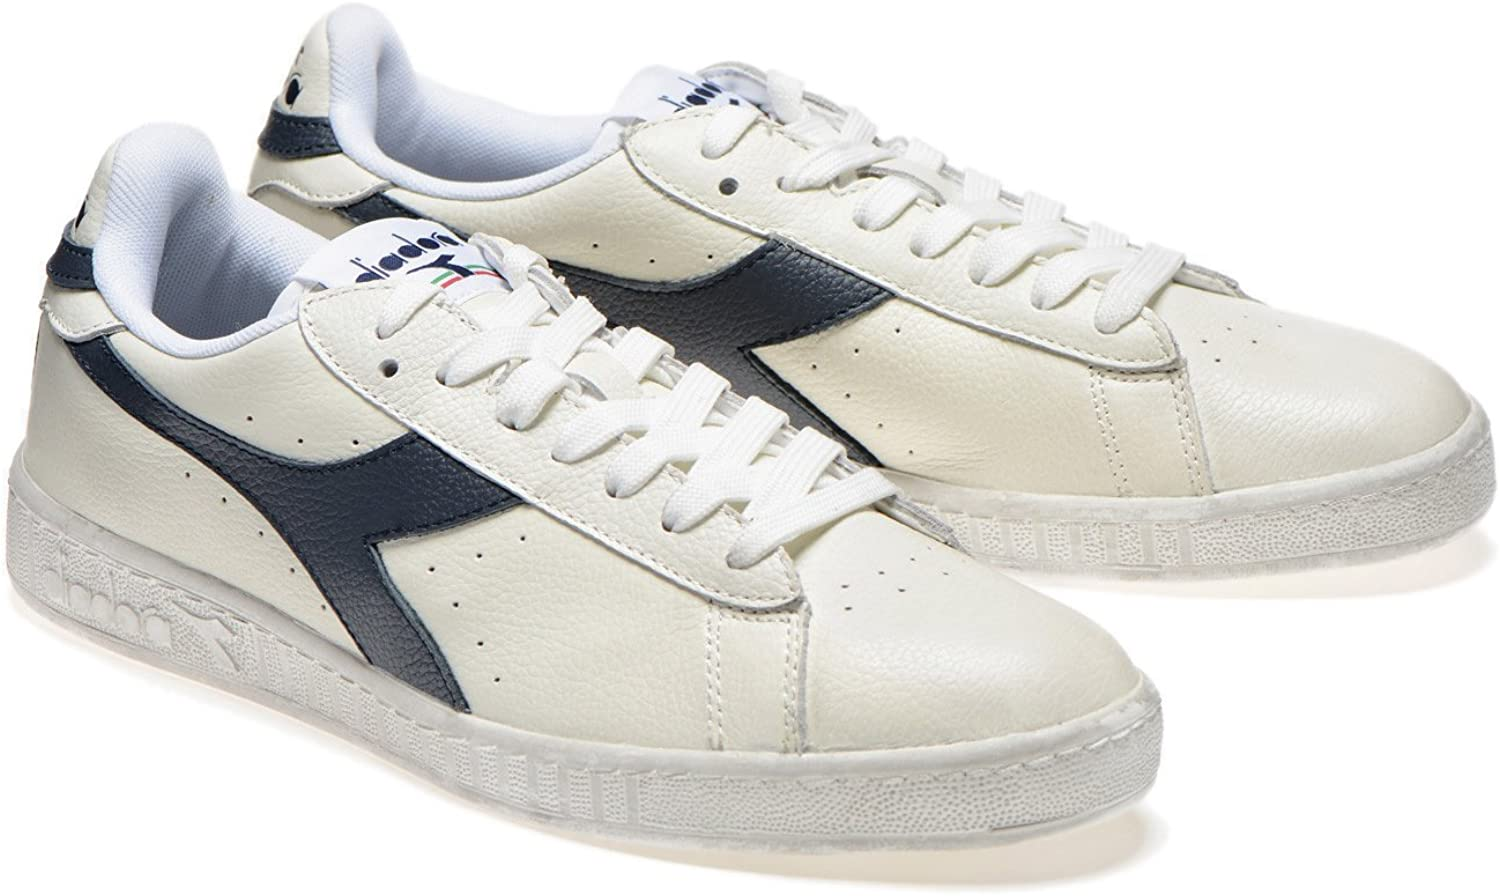 Diadora Game L Low Waxed, Chaussures de Gymnastique Mixte Adulte C5262 White Blue Sea Caspian